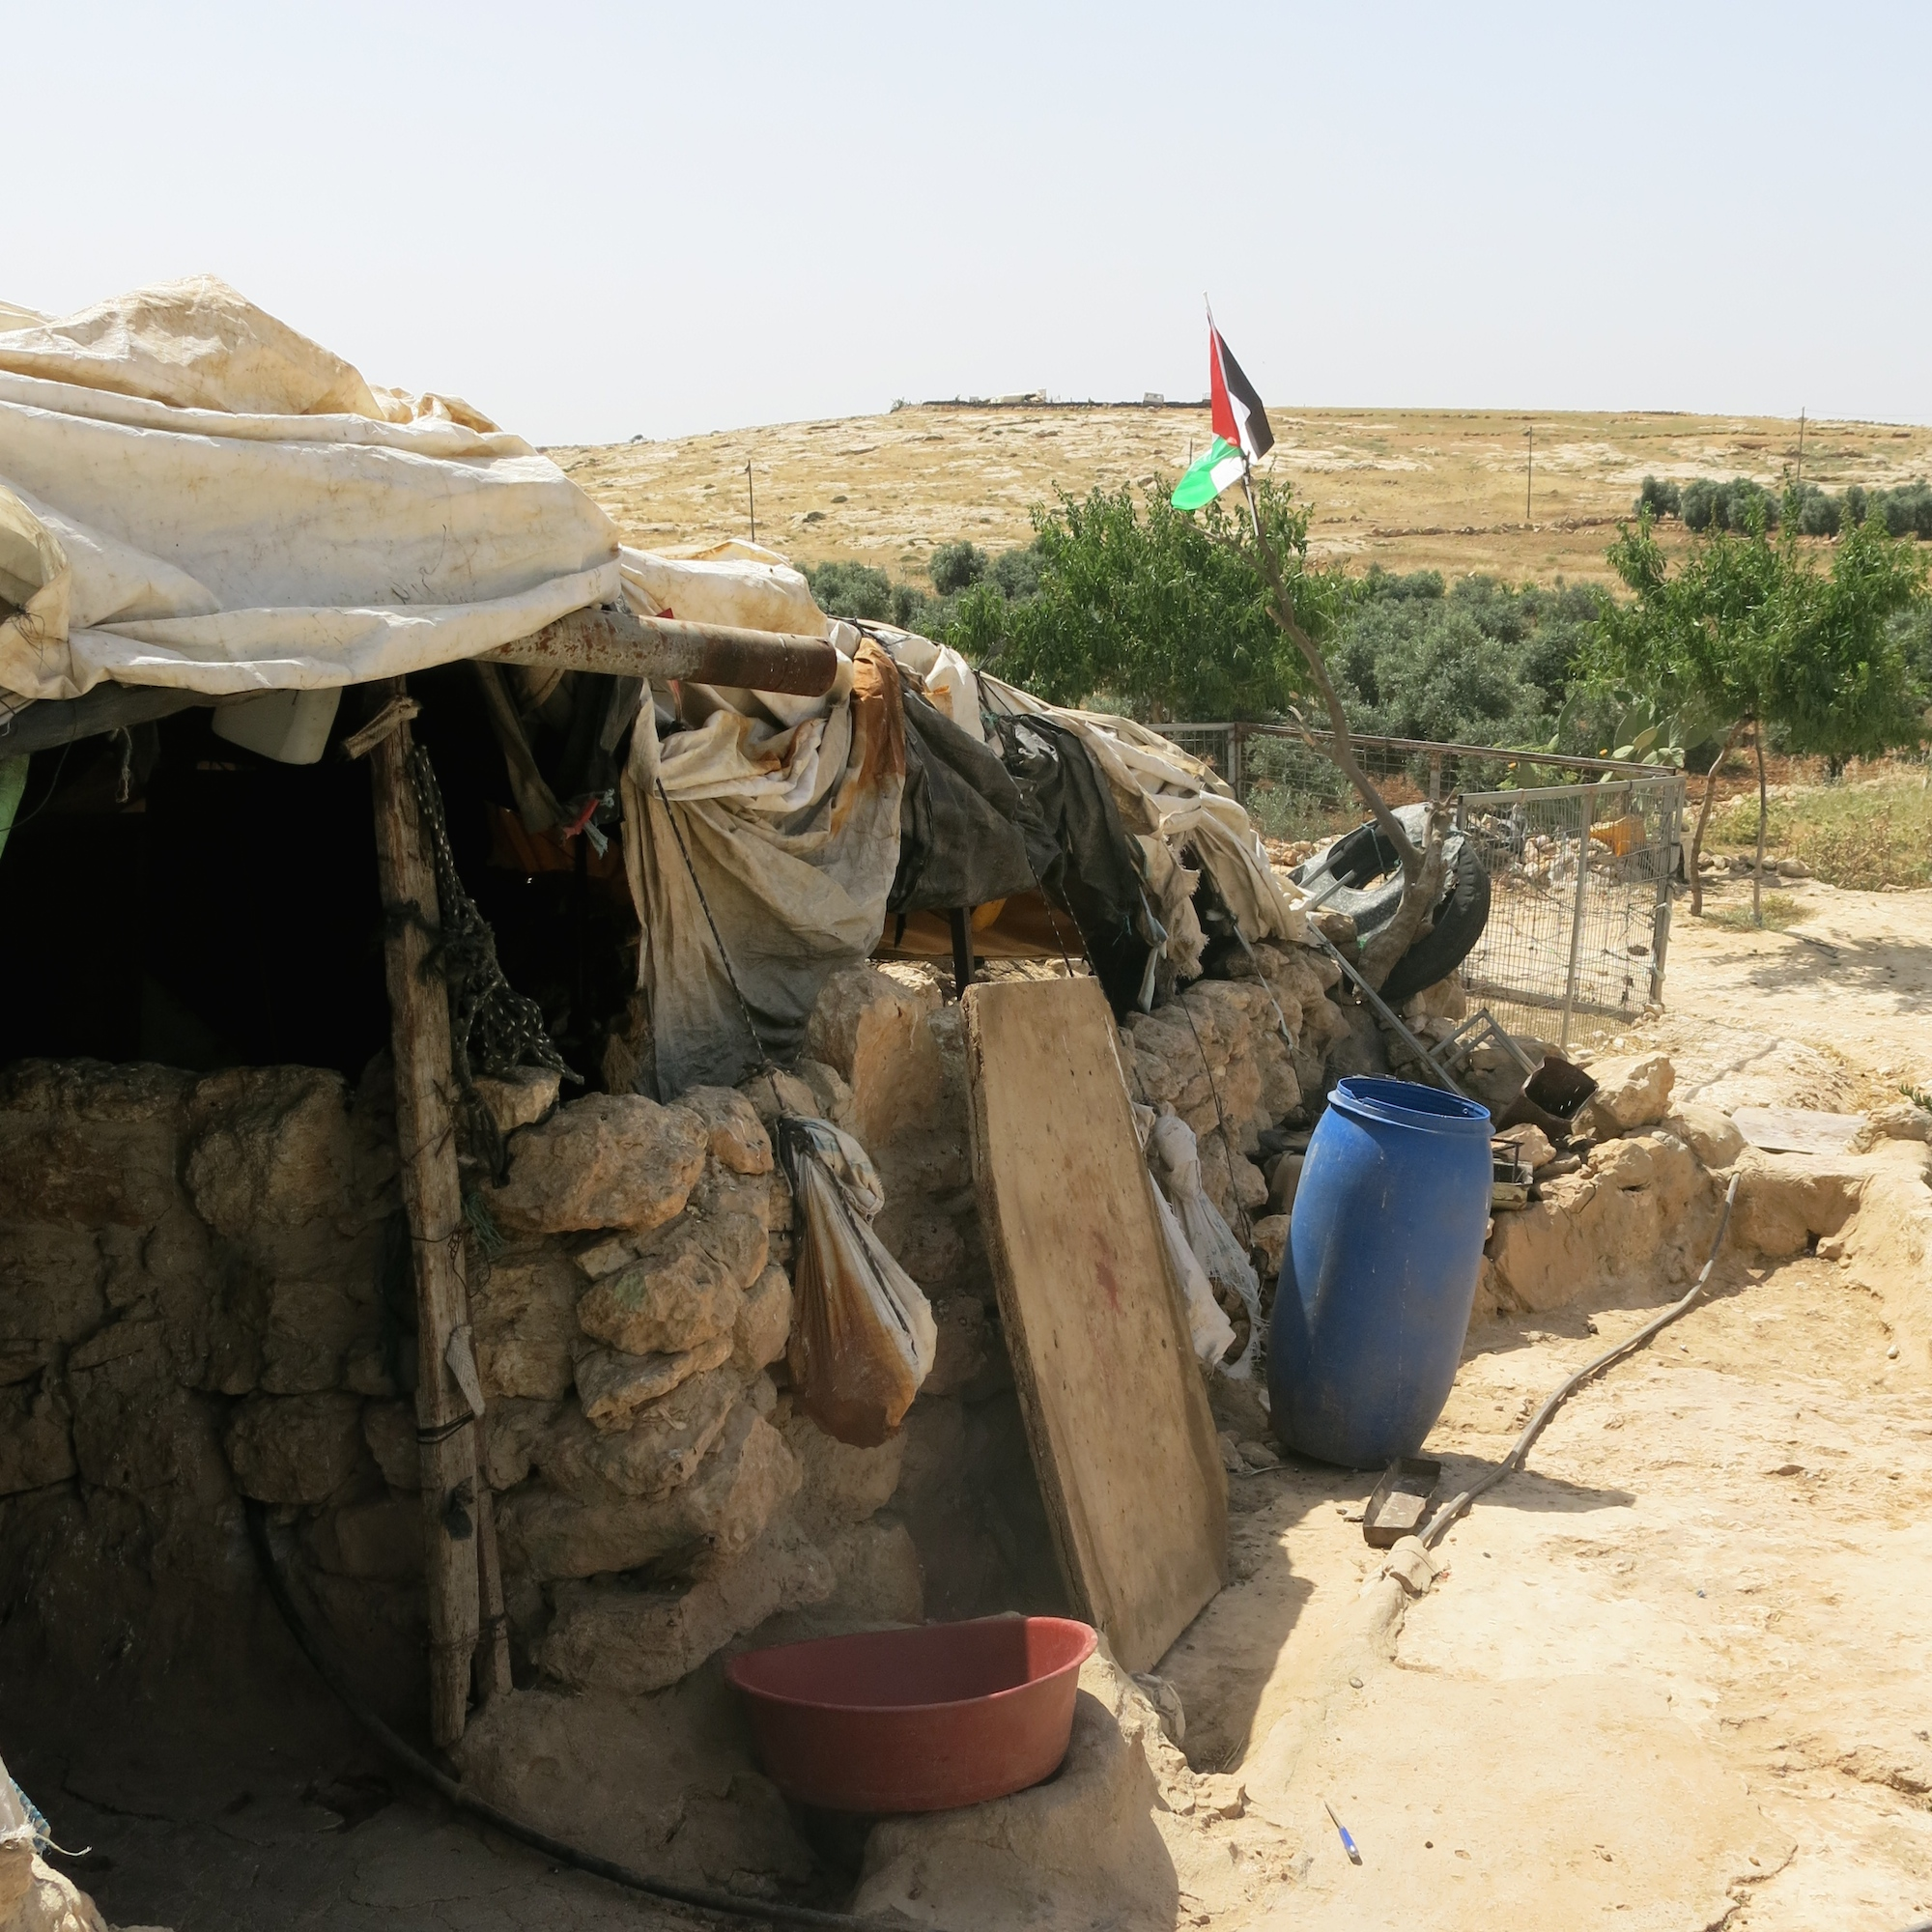 A home in the Palestinian village of Susiya, in the West Bank. It is expected to be demolished in the coming weeks.